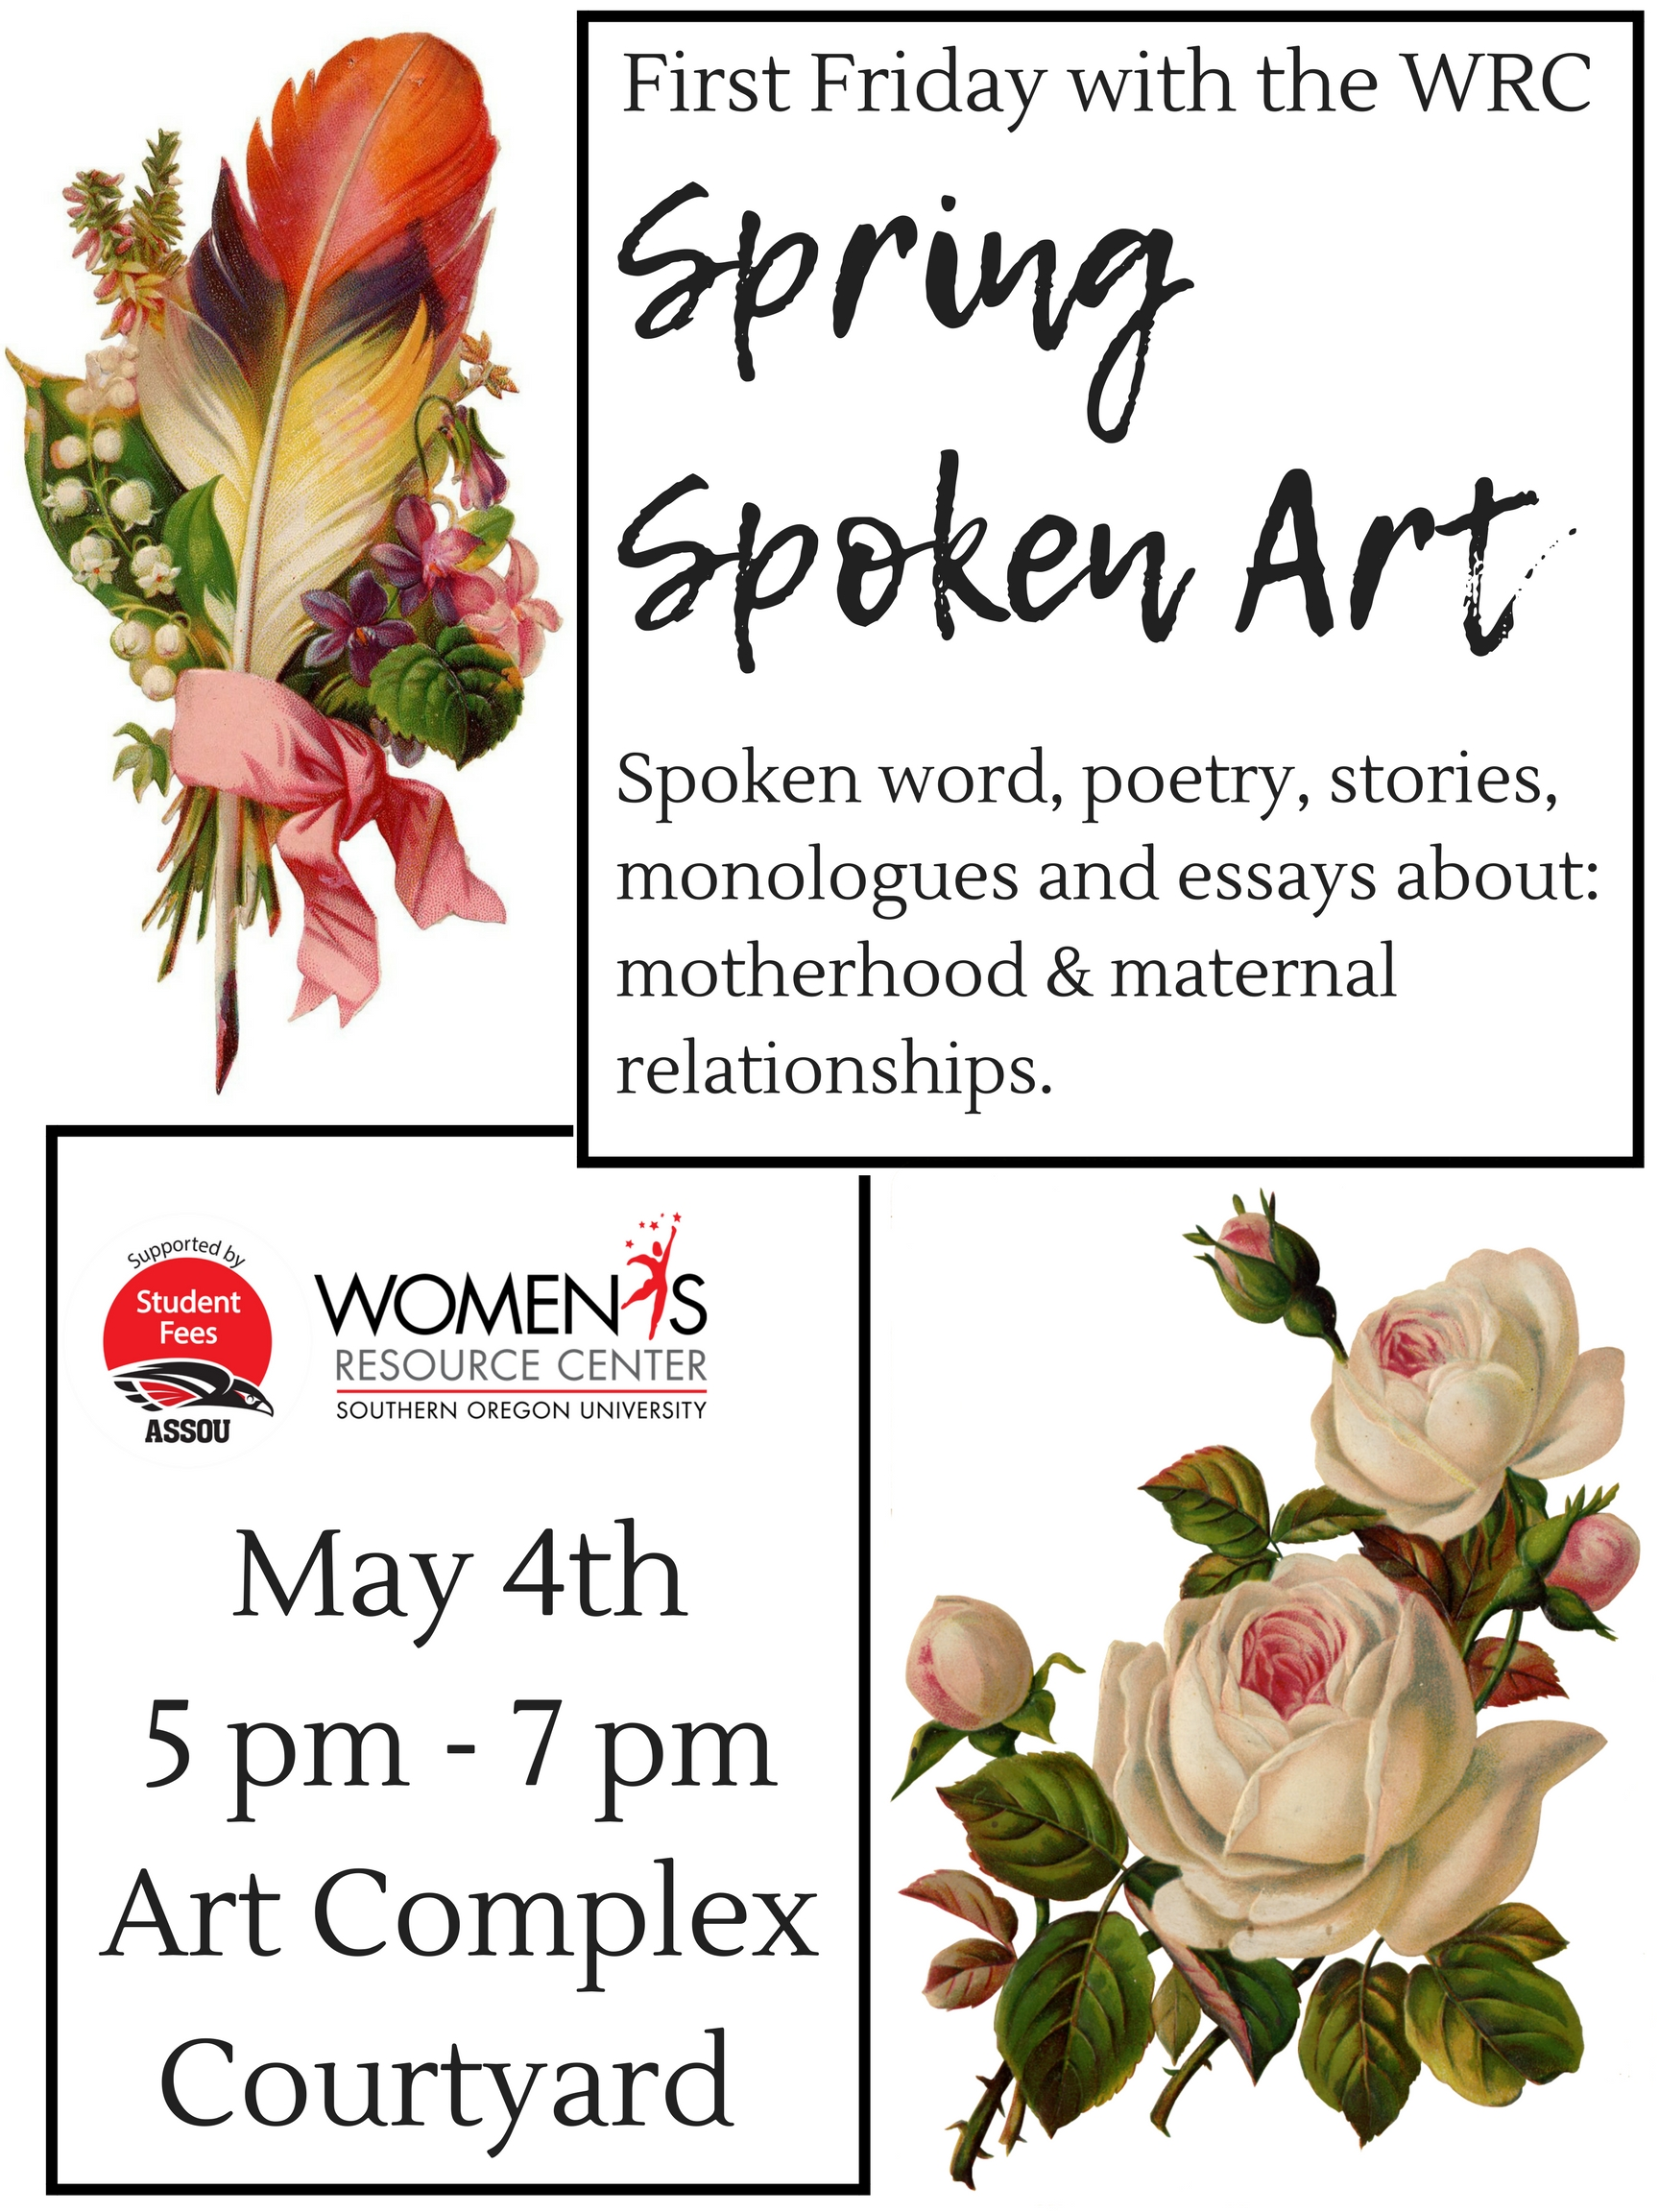 Spring Spoken Art Poster: Vintage art of flowers and feathers, text reads: First Friday with the WRC, Spring Spoken Art. Spoken word, poetry, stories, monologues and essays about: motherhood & maternal relationships. May 4th 5 pm - 7 pm Art Complex Courtyard